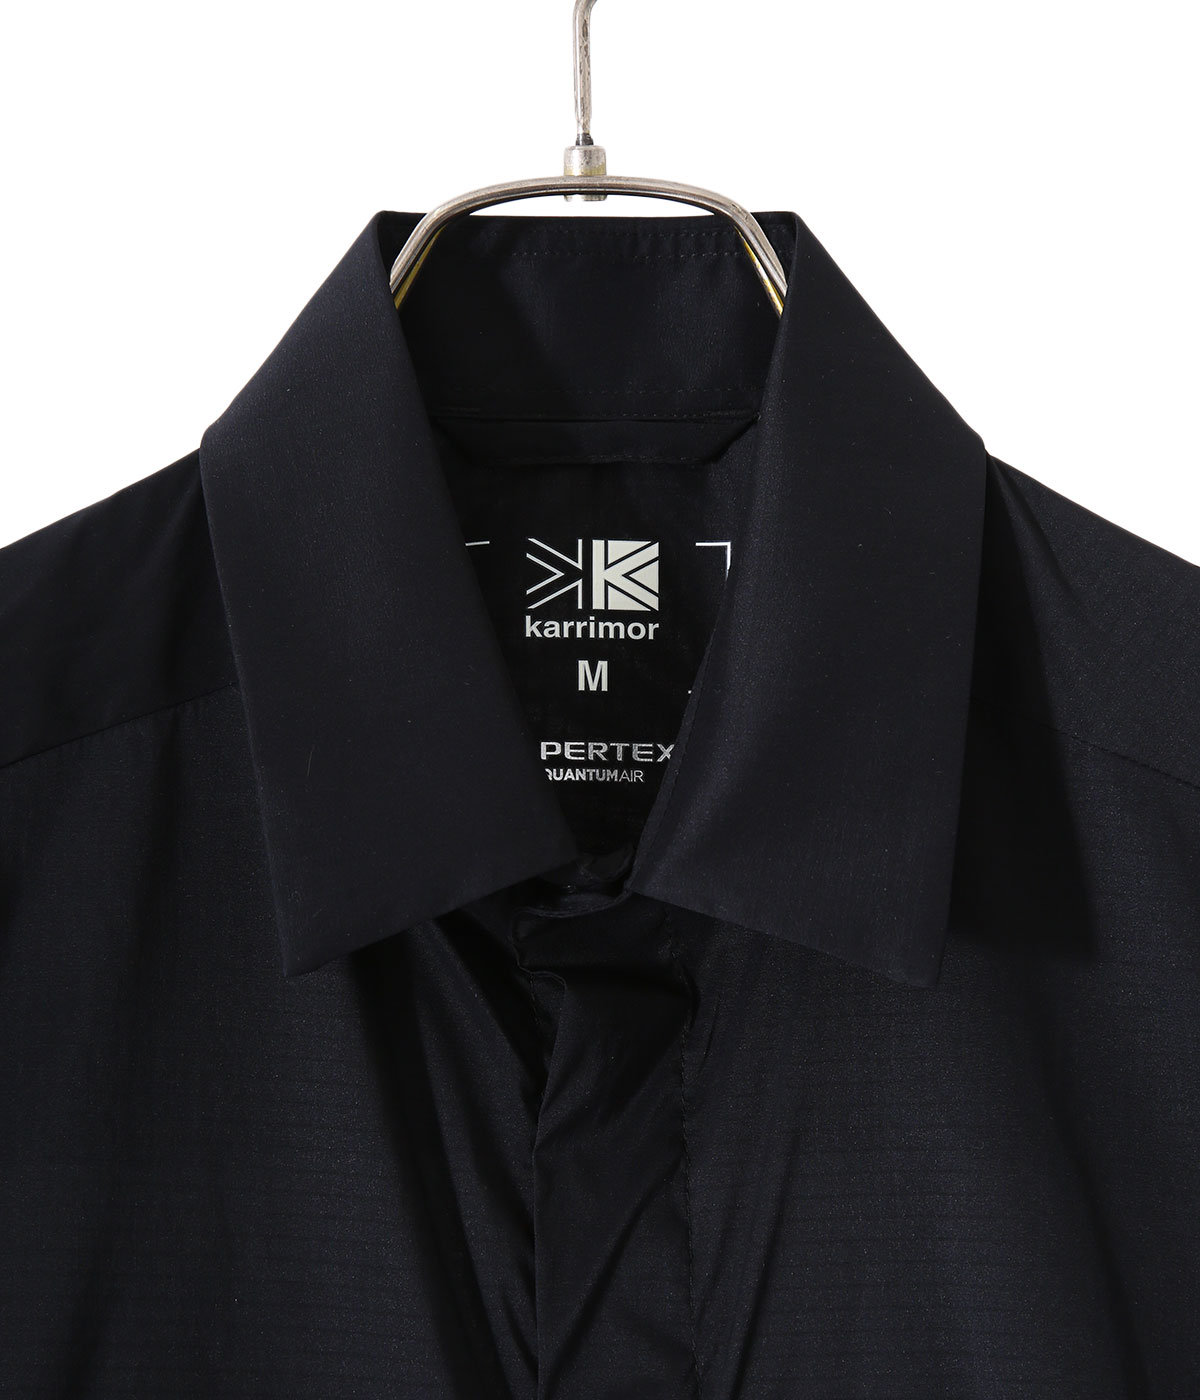 breathable S/S shirts